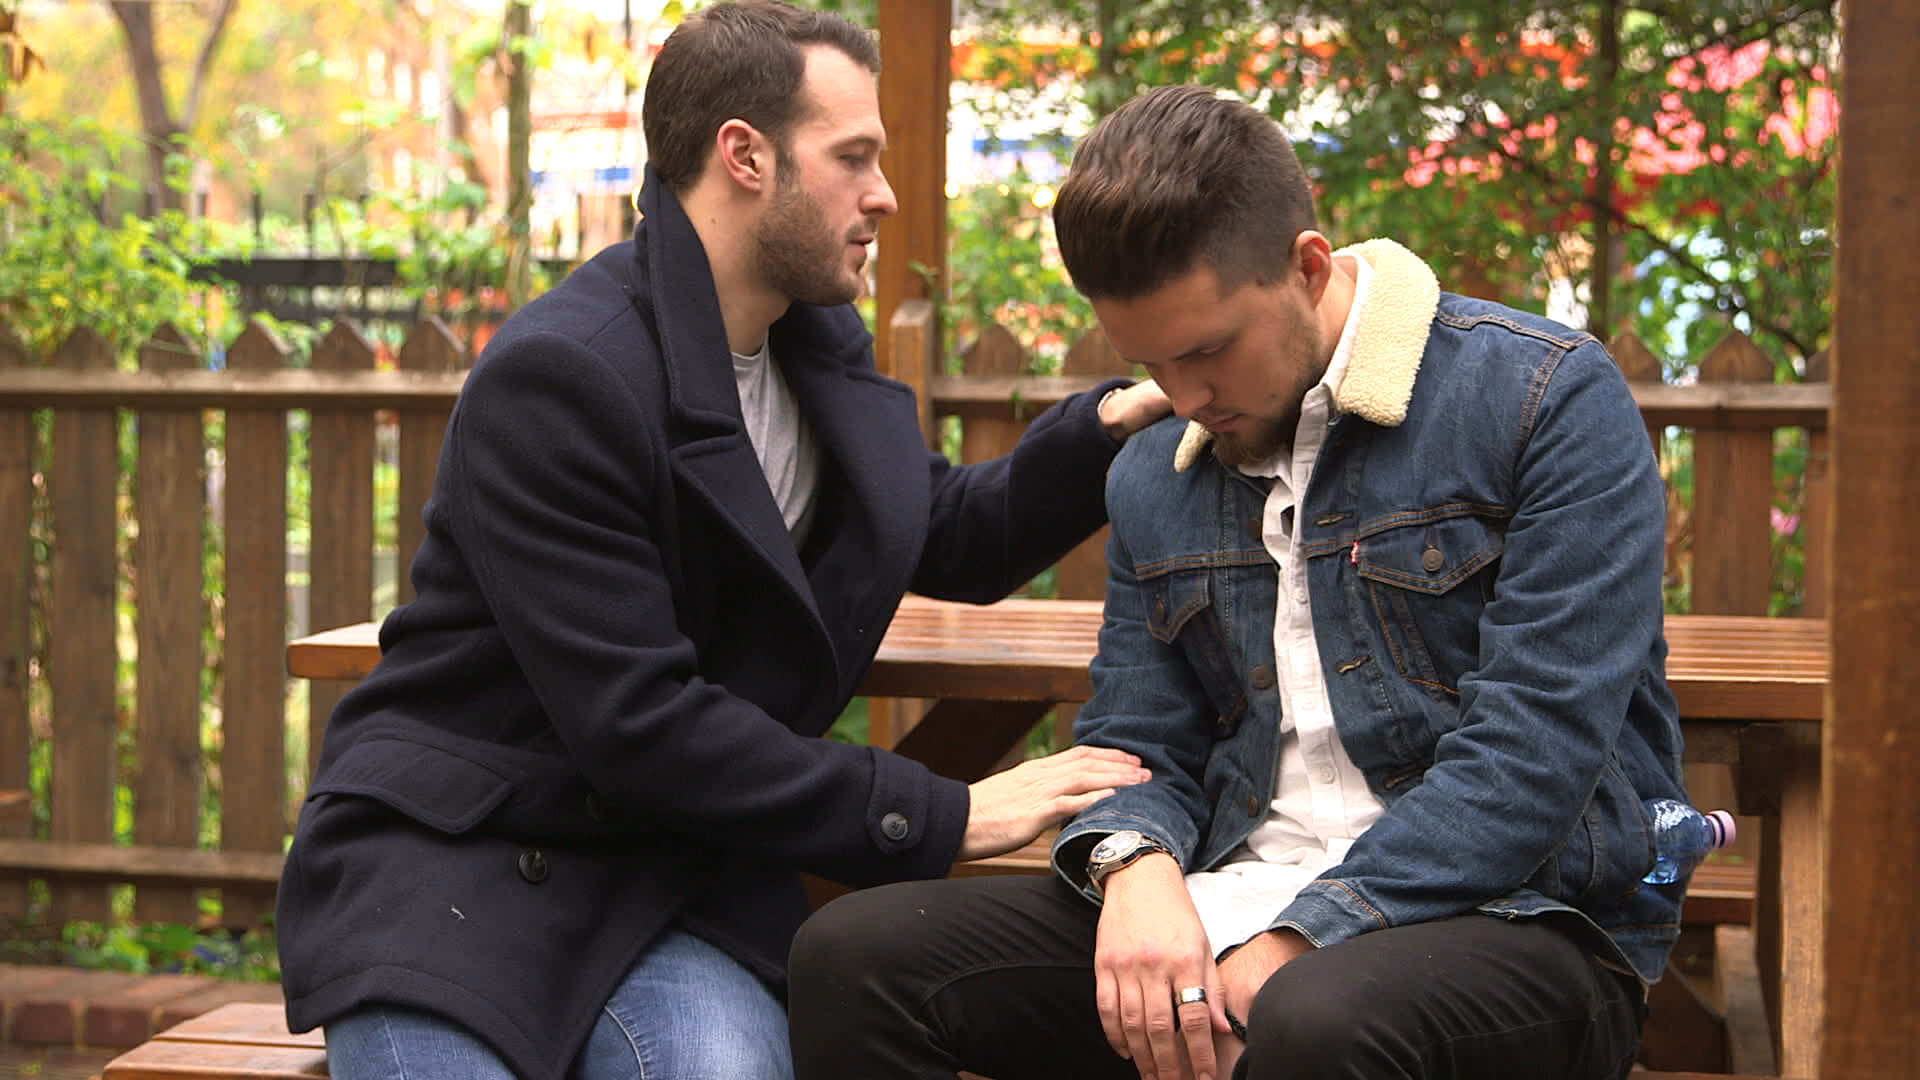 Aaron calvert hypnotising George on a bench in hello stranger for channel 4